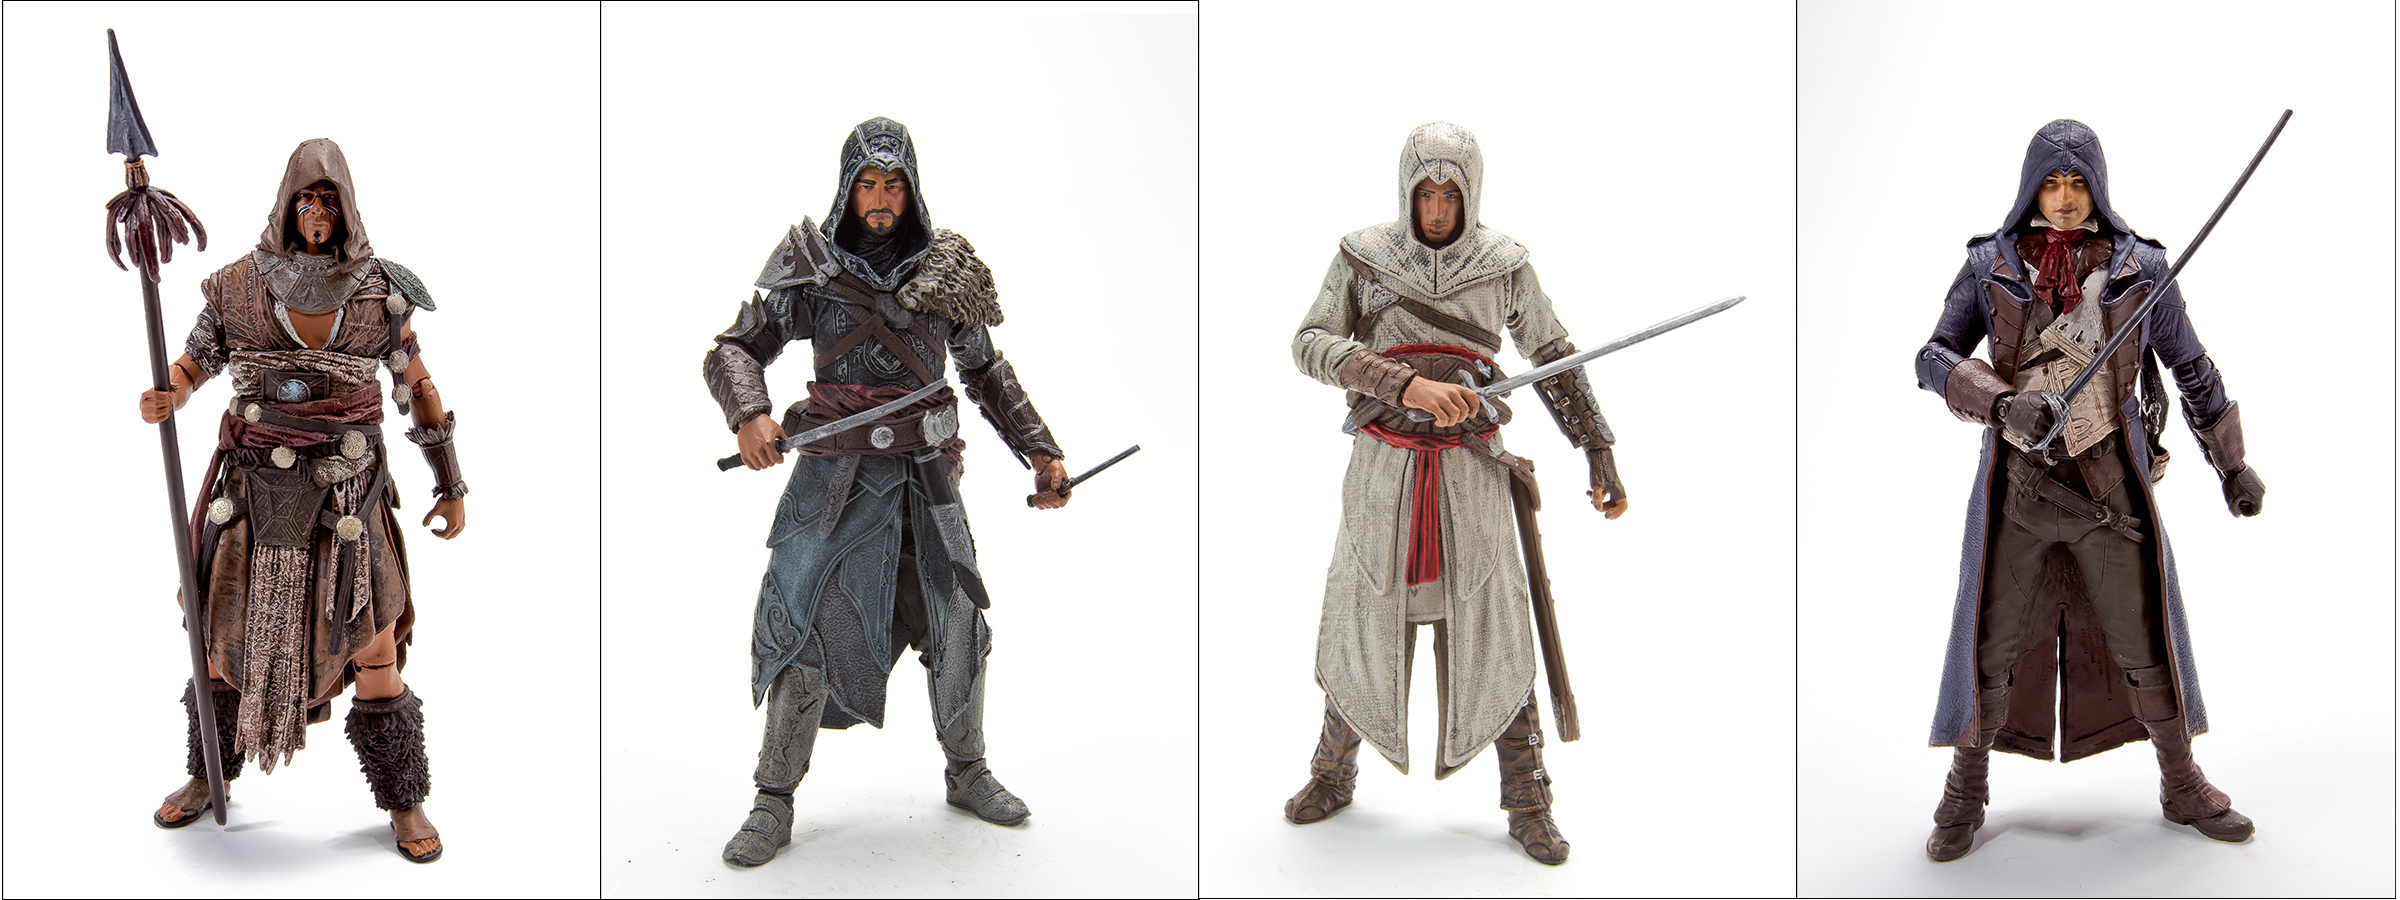 ASSASSINS CREED SERIES 3 AF ASST